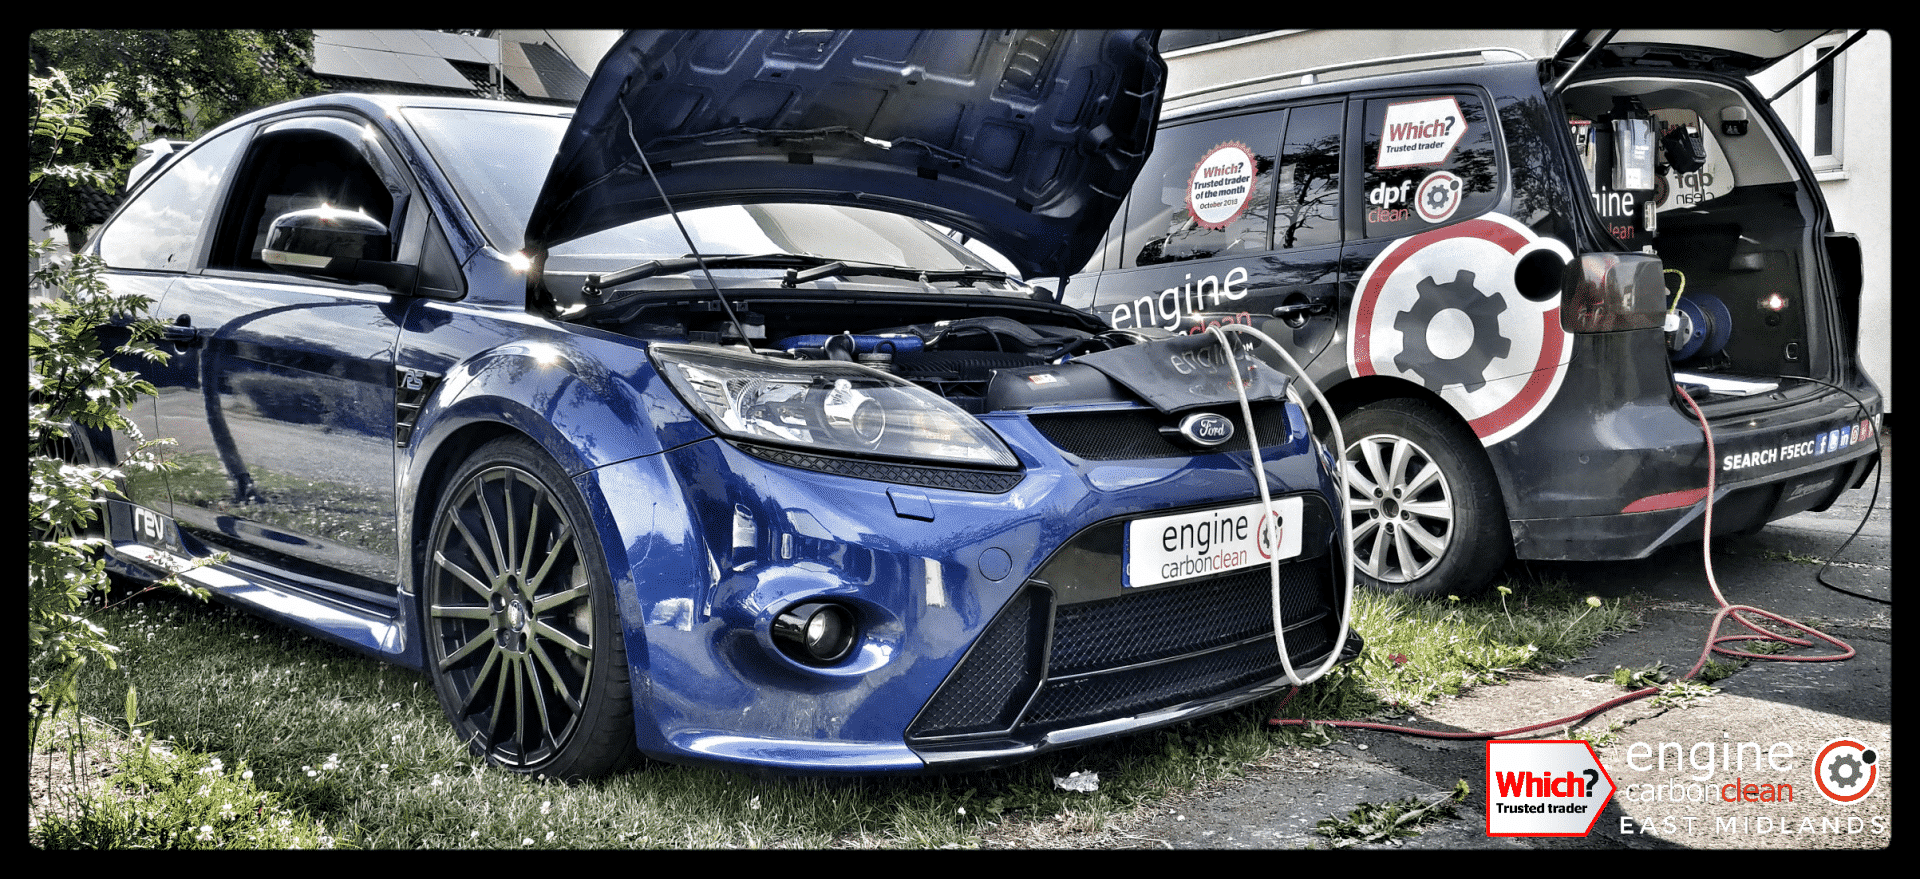 Diagnostic Consultation and Engine Carbon Clean on a Ford Focus RS (2009 - 33,038 miles)